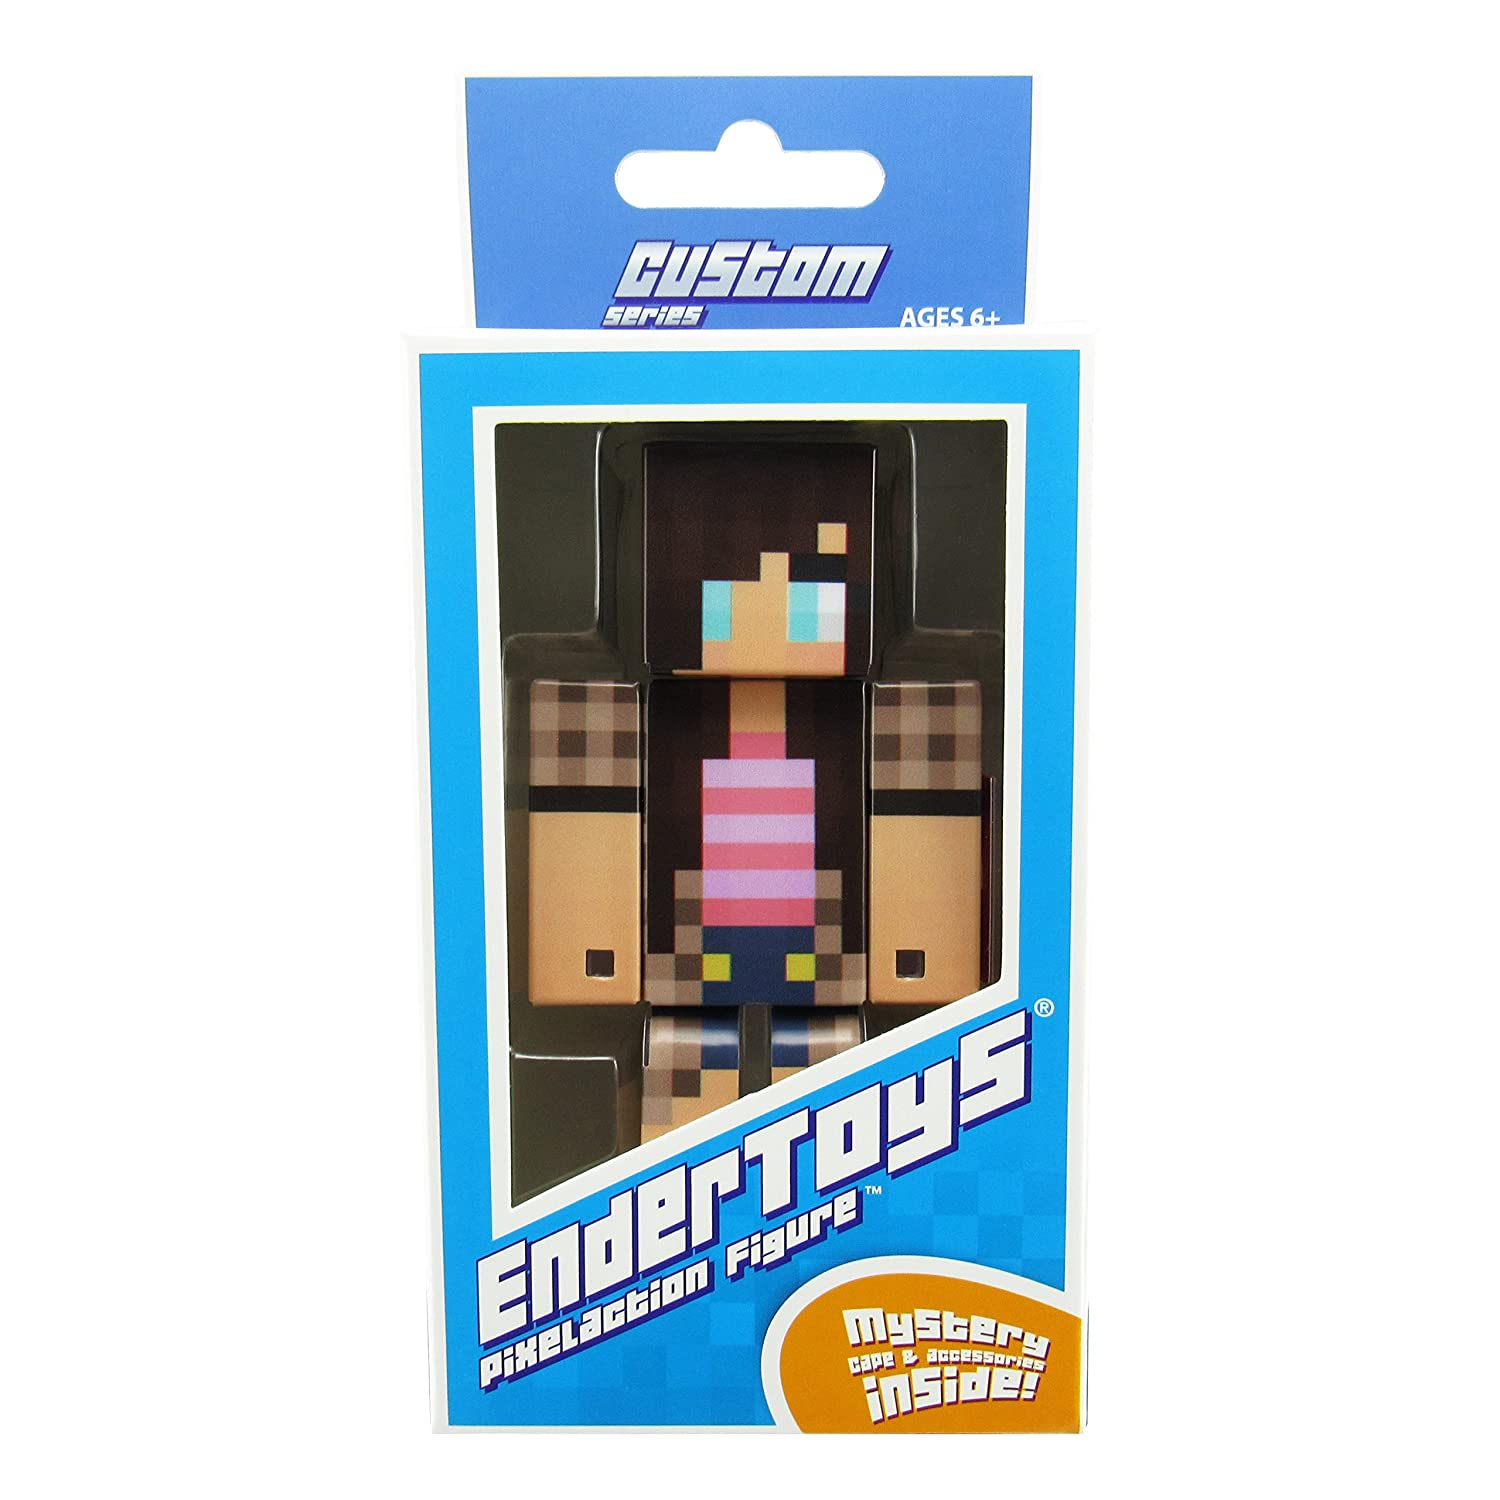 Not an Official Minecraft Product EnderToys Cow Girl Action Figure Toy